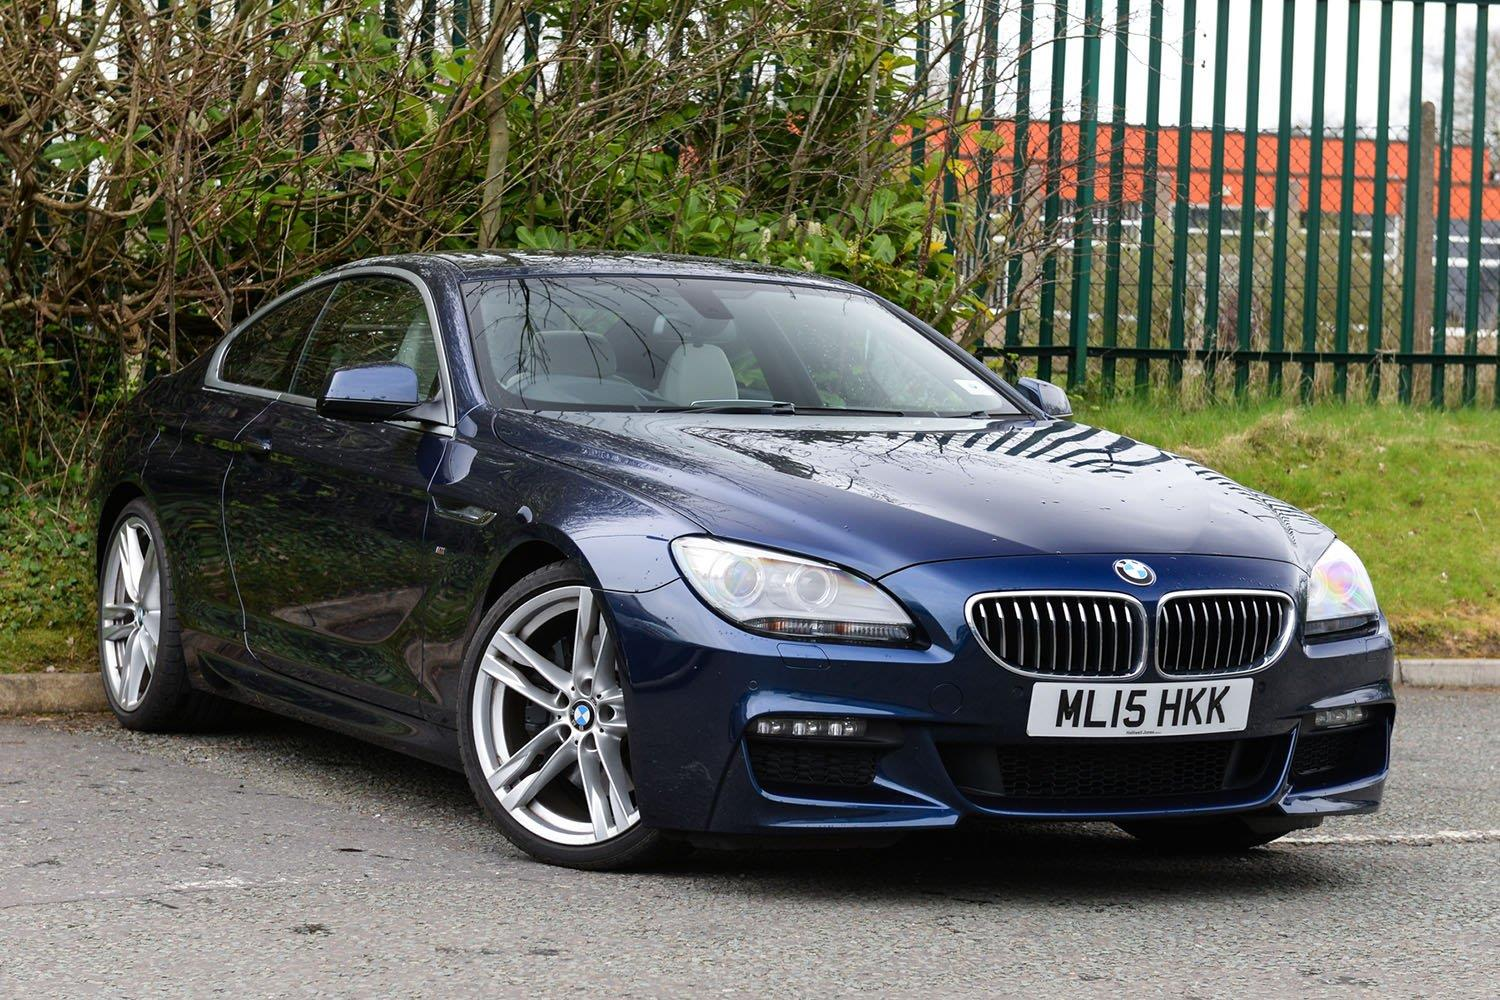 BMW 6 Series Coupé ML15HKK - Image 1